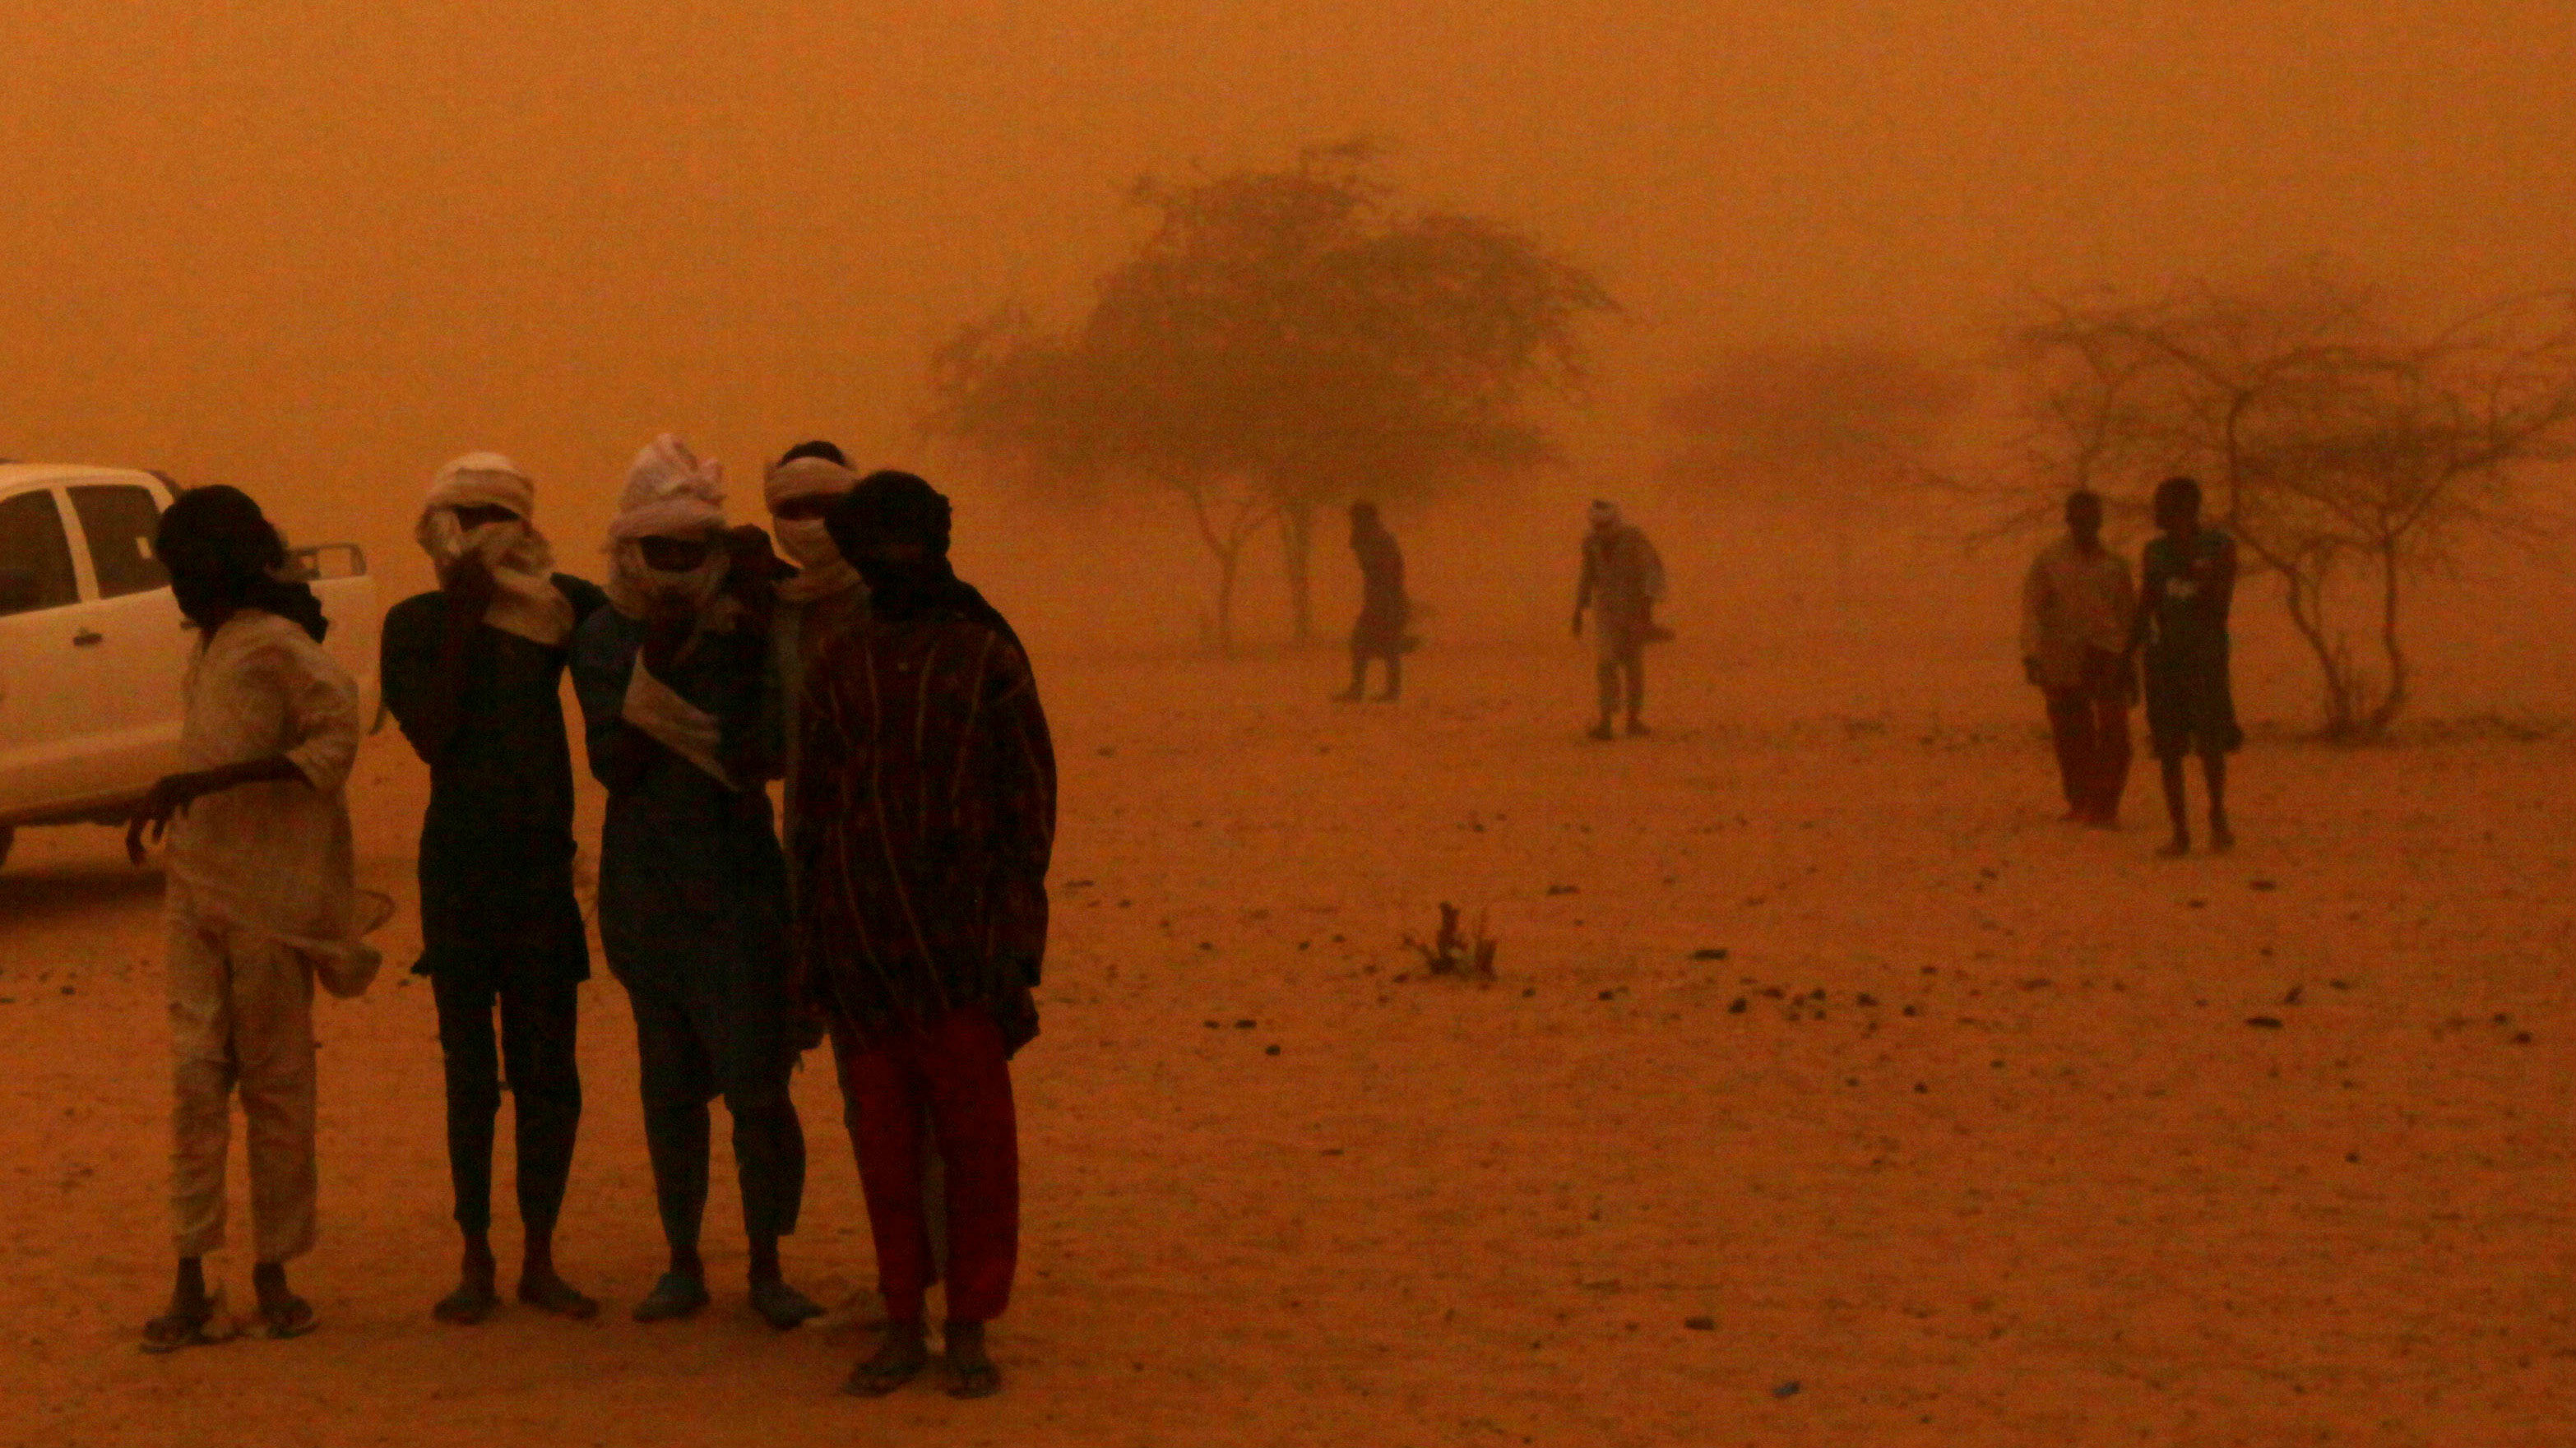 In this Tuesday, May 11, 2010 photo, a sandstorm engulfs Fulani herdsmen near their temporary settlement in Gadabeji, Niger. At this time of year, the Gadabeji Reserve should be a refuge for the nomadic tribes who travel across the moonscape deserts of Niger to graze their cattle. But the grass is meager, not enough even for the small goats, after a drought killed off the last year's crops. International aid groups once again warn this nation of 15 million on the verge of the Sahara Desert faces a growing food crisis.